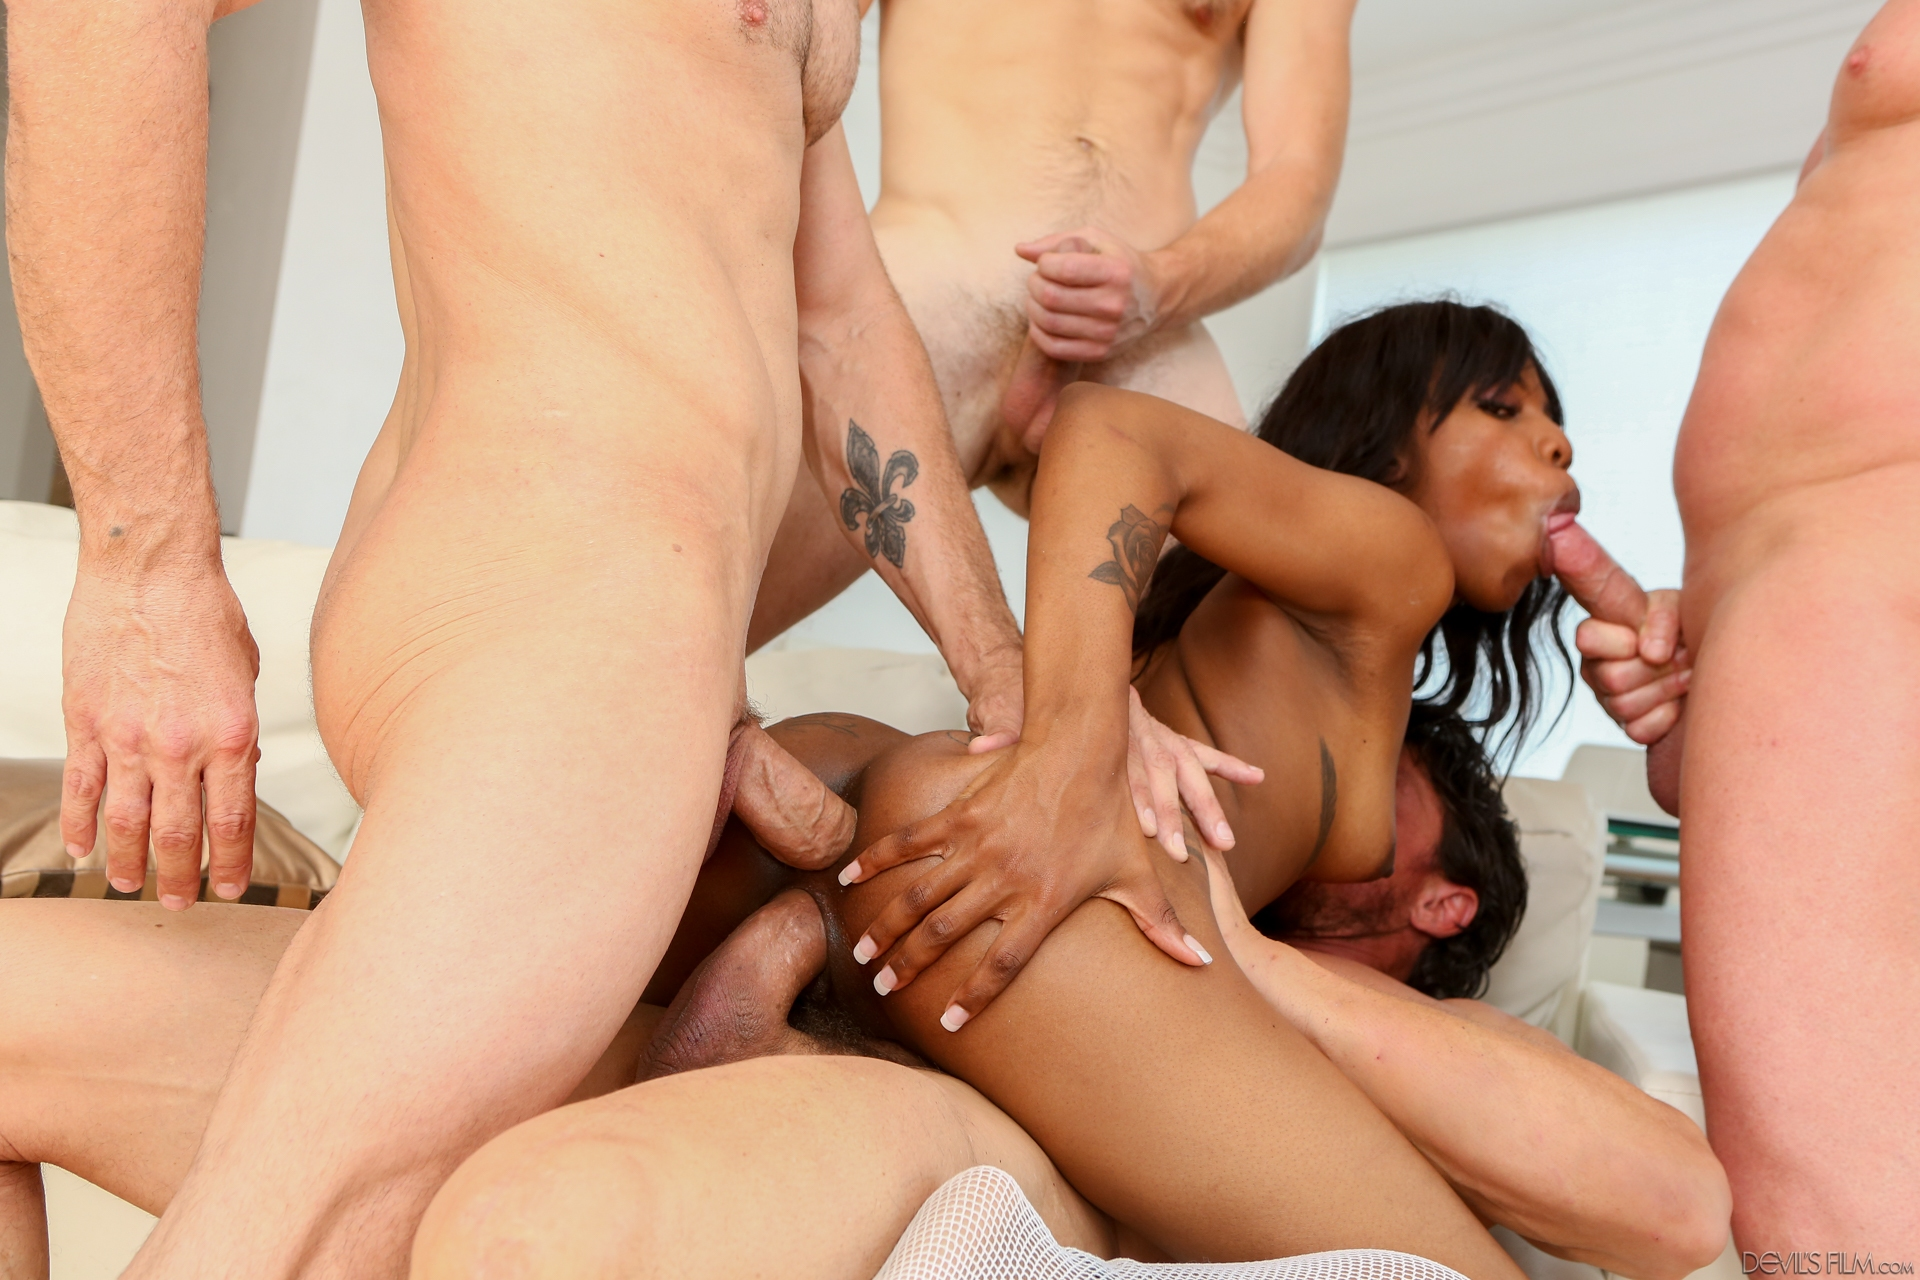 Black Girl White Guy  Most Sexy Porn  Free Hd  4K Photos-2318